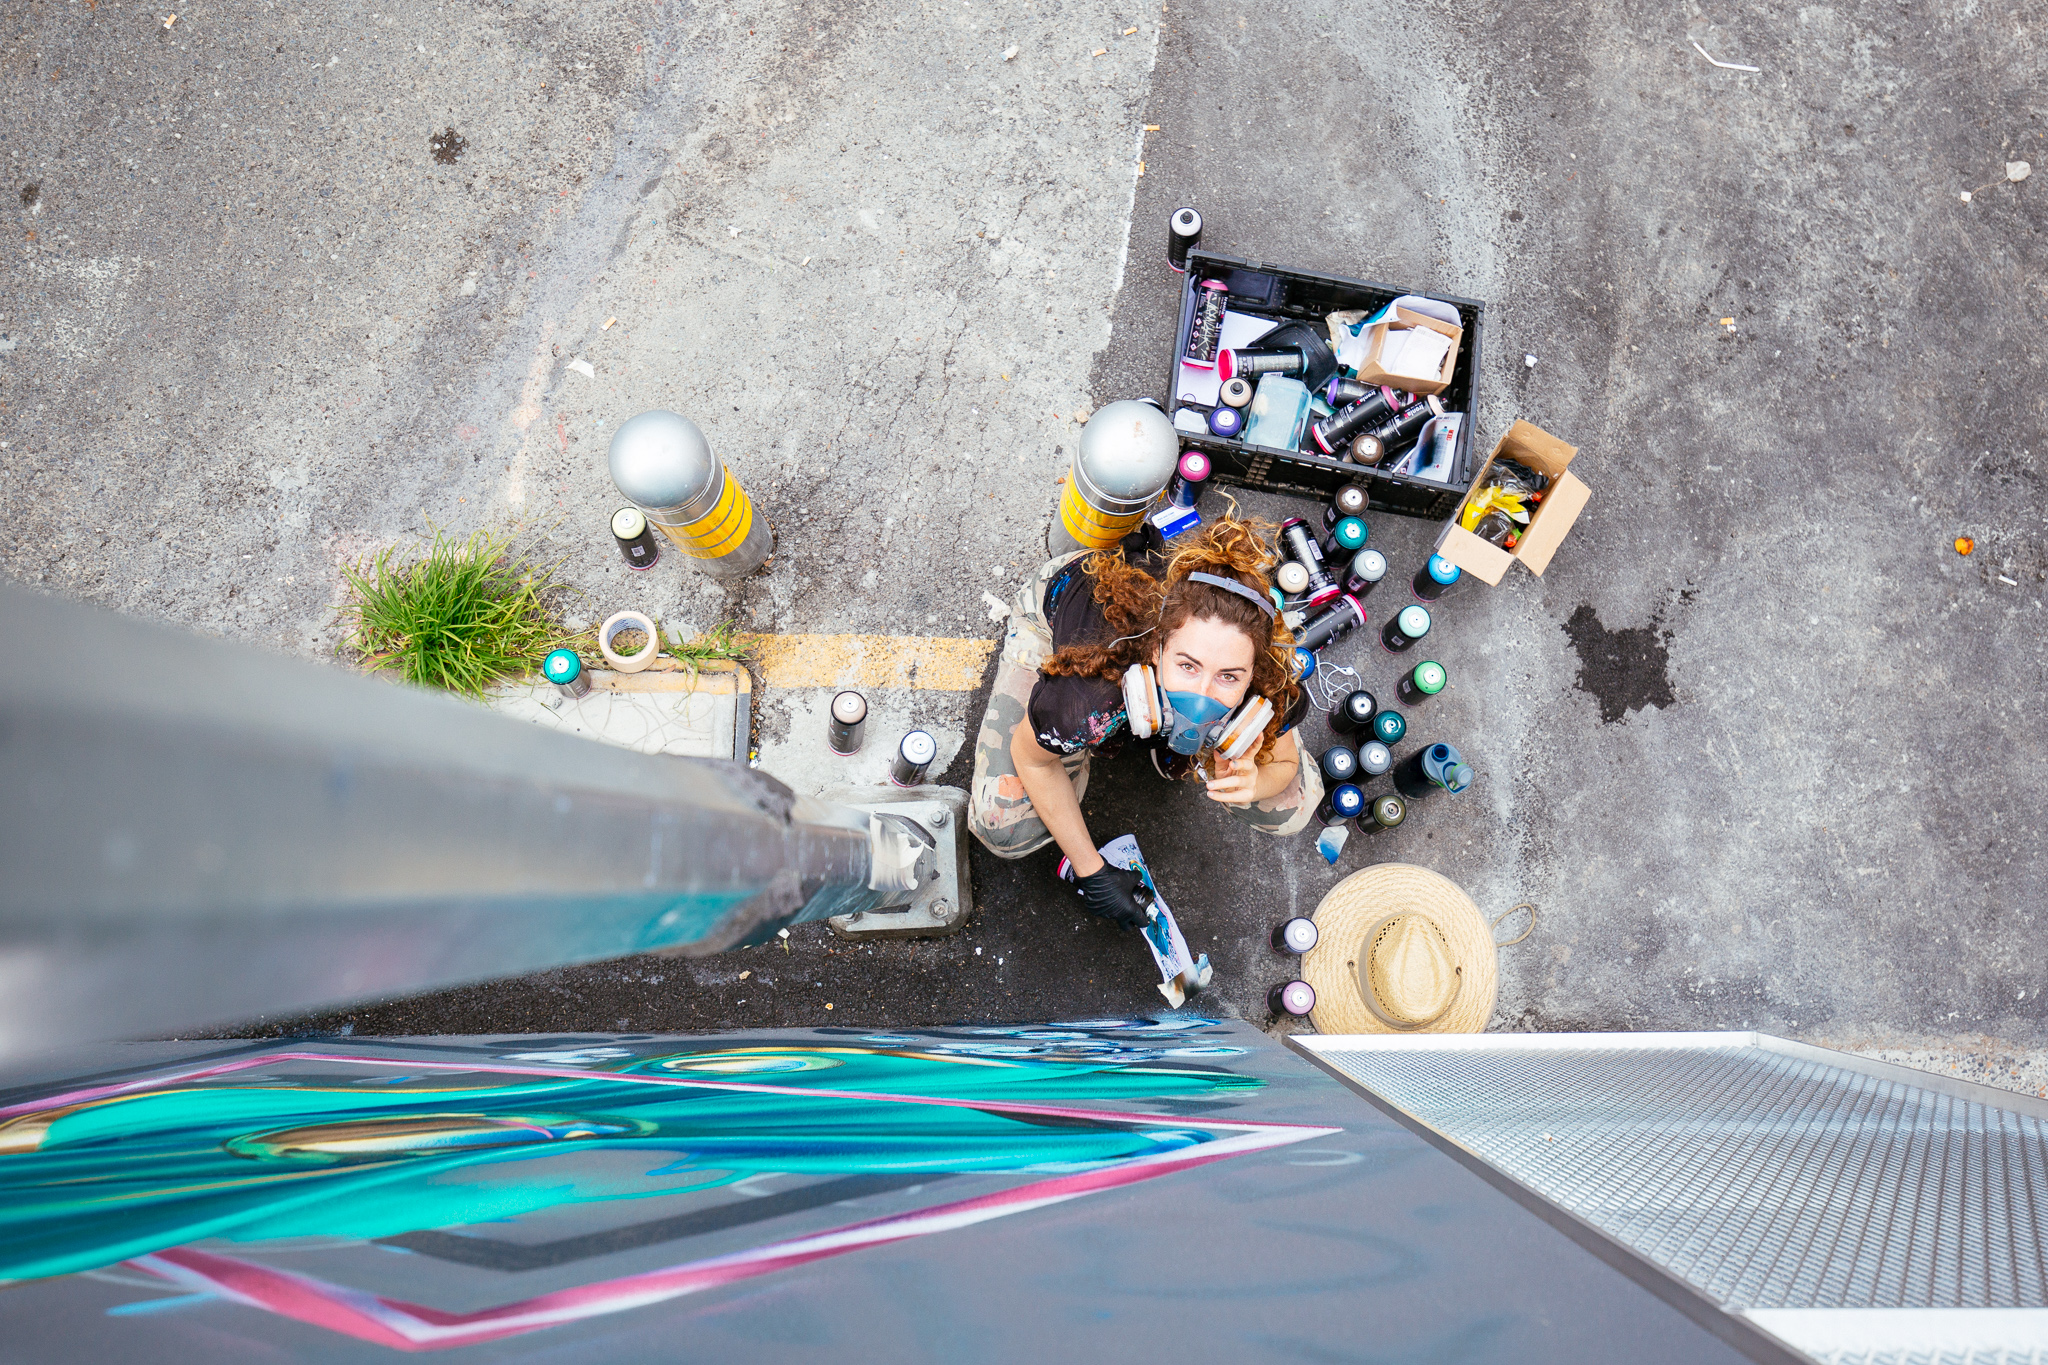 WE'RE A STREET ART AGENCY♧ - As a young, ambitious and culturally connected team, The Culprit Club take great pride in being fully immersed and connected with our culture, our community and our clients to deliver high-impact visual art that serves people and places around the world.